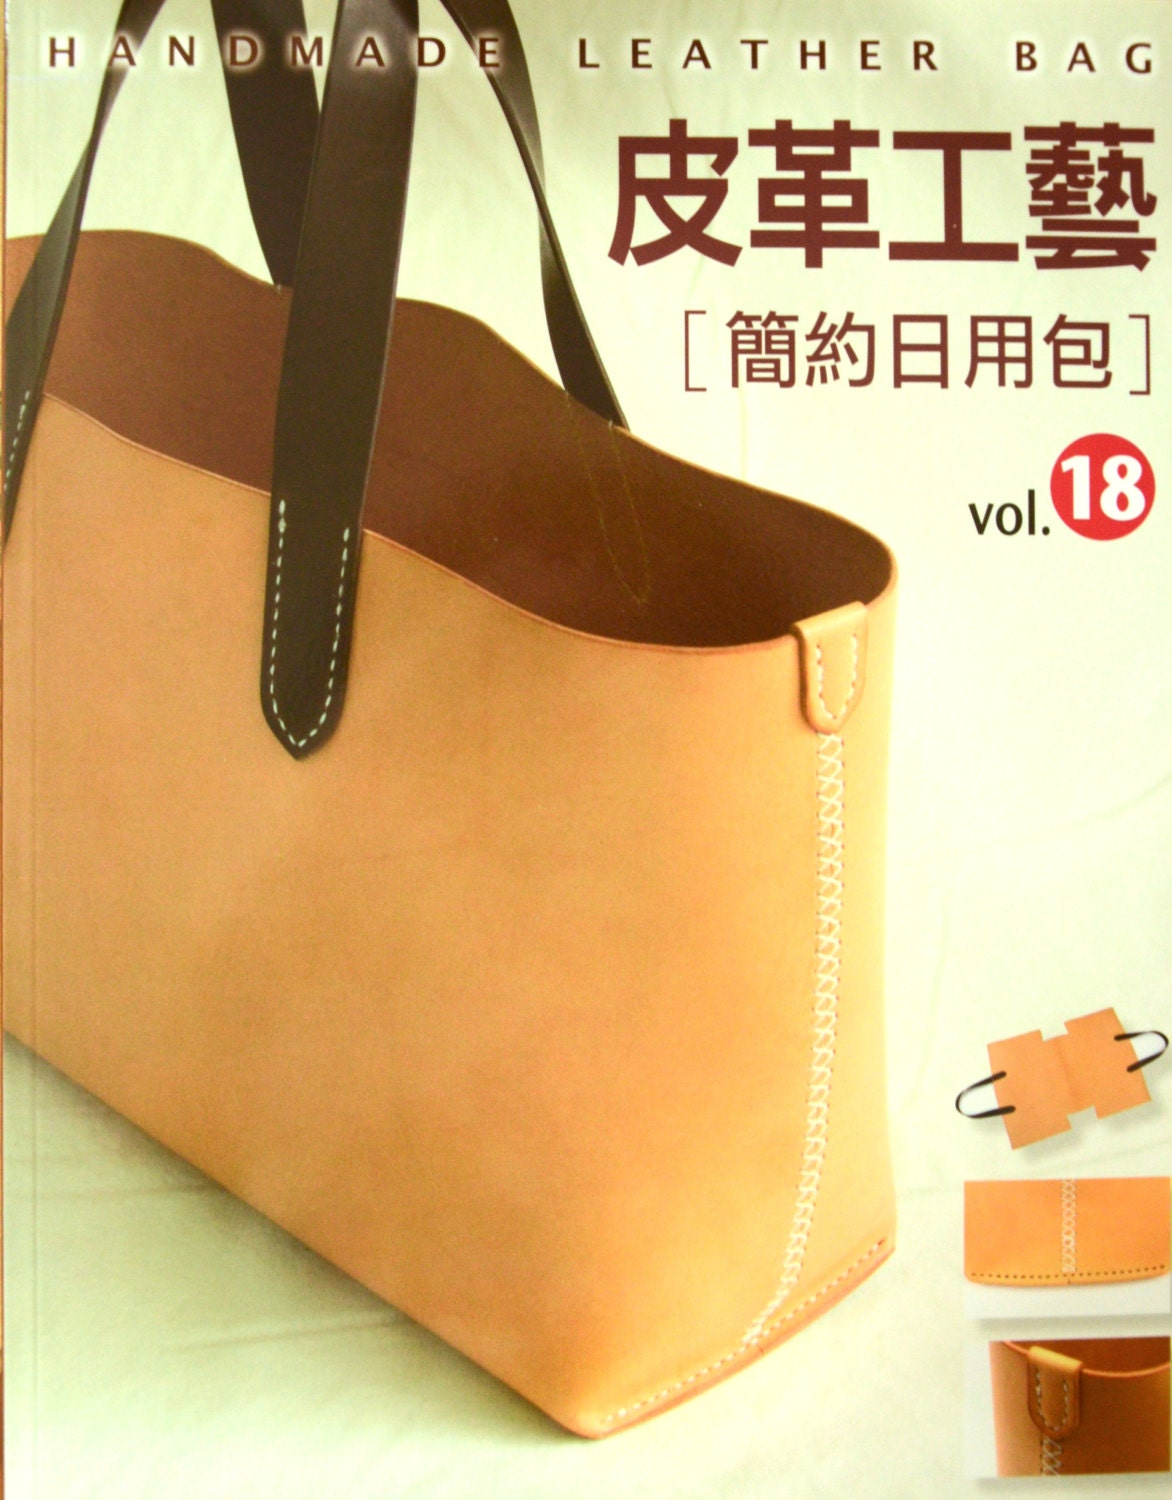 Leather Bag Japan - Handmade leather bag japanese leather craft book in chinese